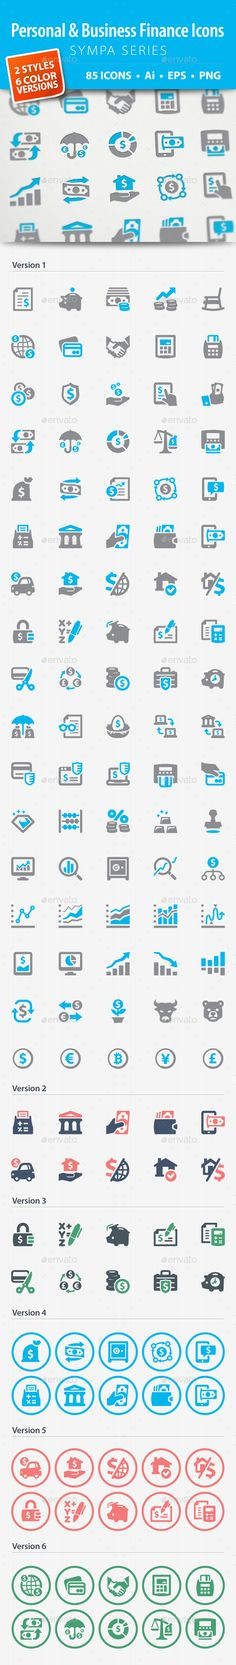 Personal & Business Finance Icons - Sympa Series #design Download: http://graphicriver.net/item/personal-business-finance-icons-sympa-series/13569787?ref=ksioks